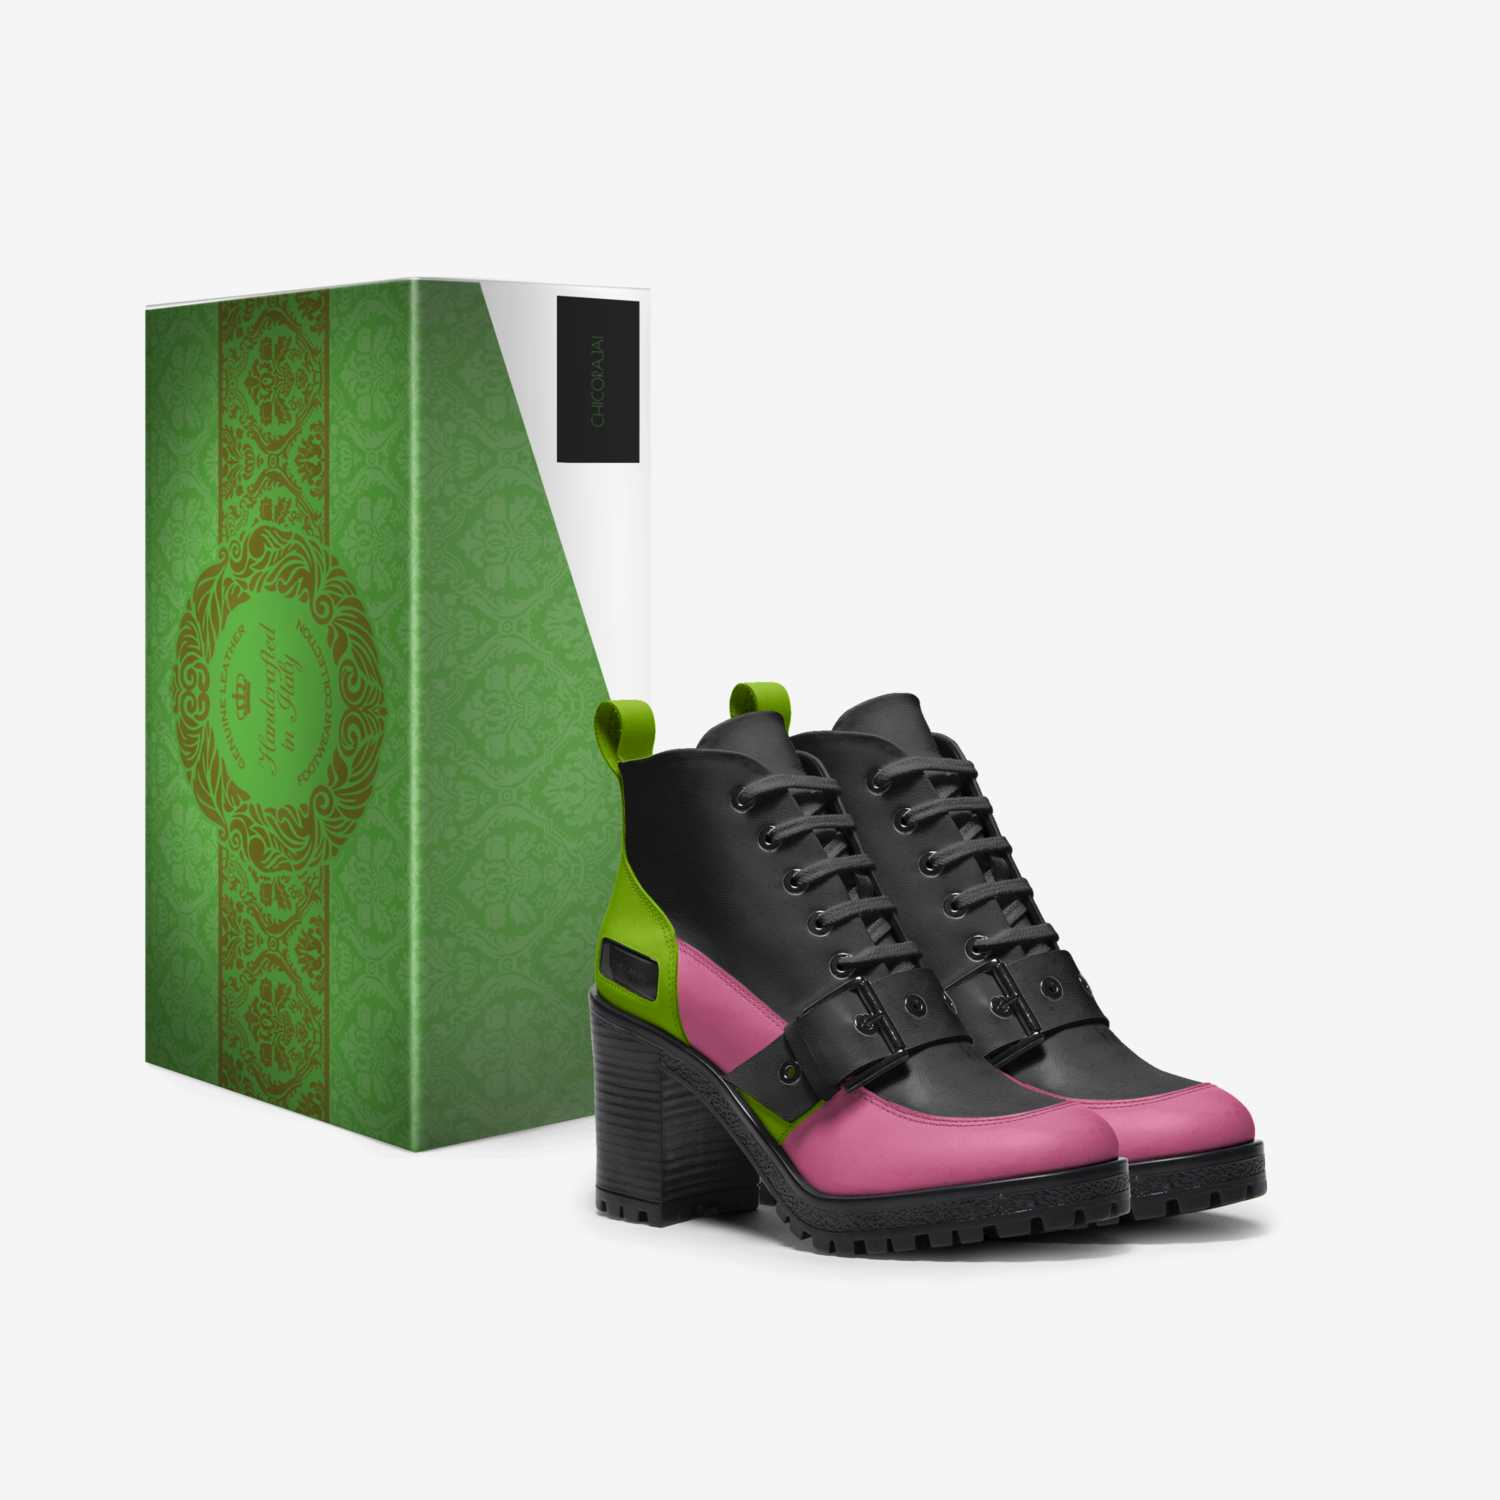 ChicoraJai custom made in Italy shoes by Chicora Johnson | Box view